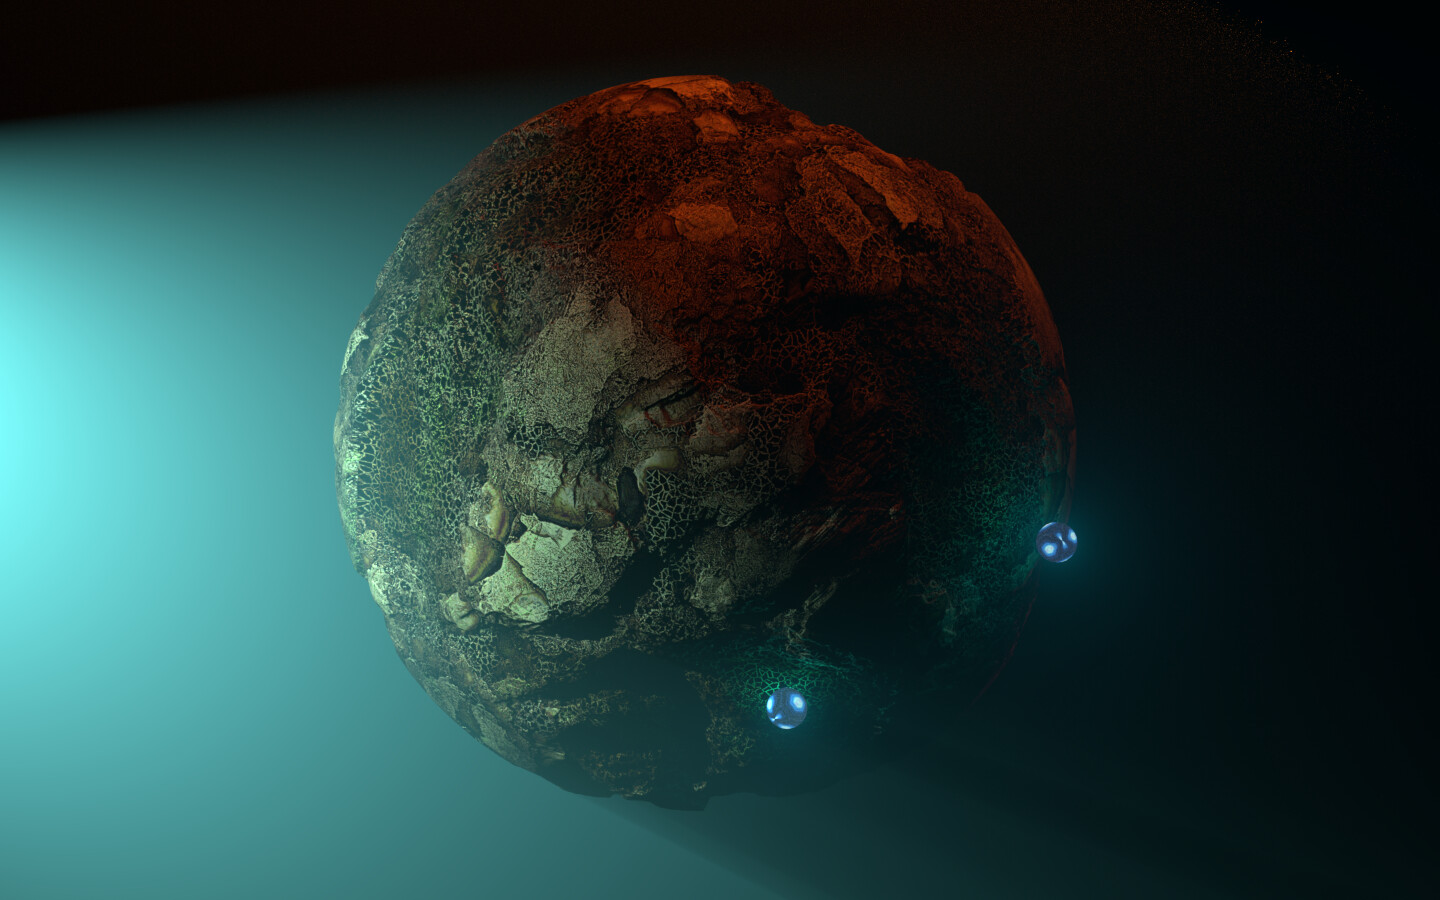 Alien planet Material light test